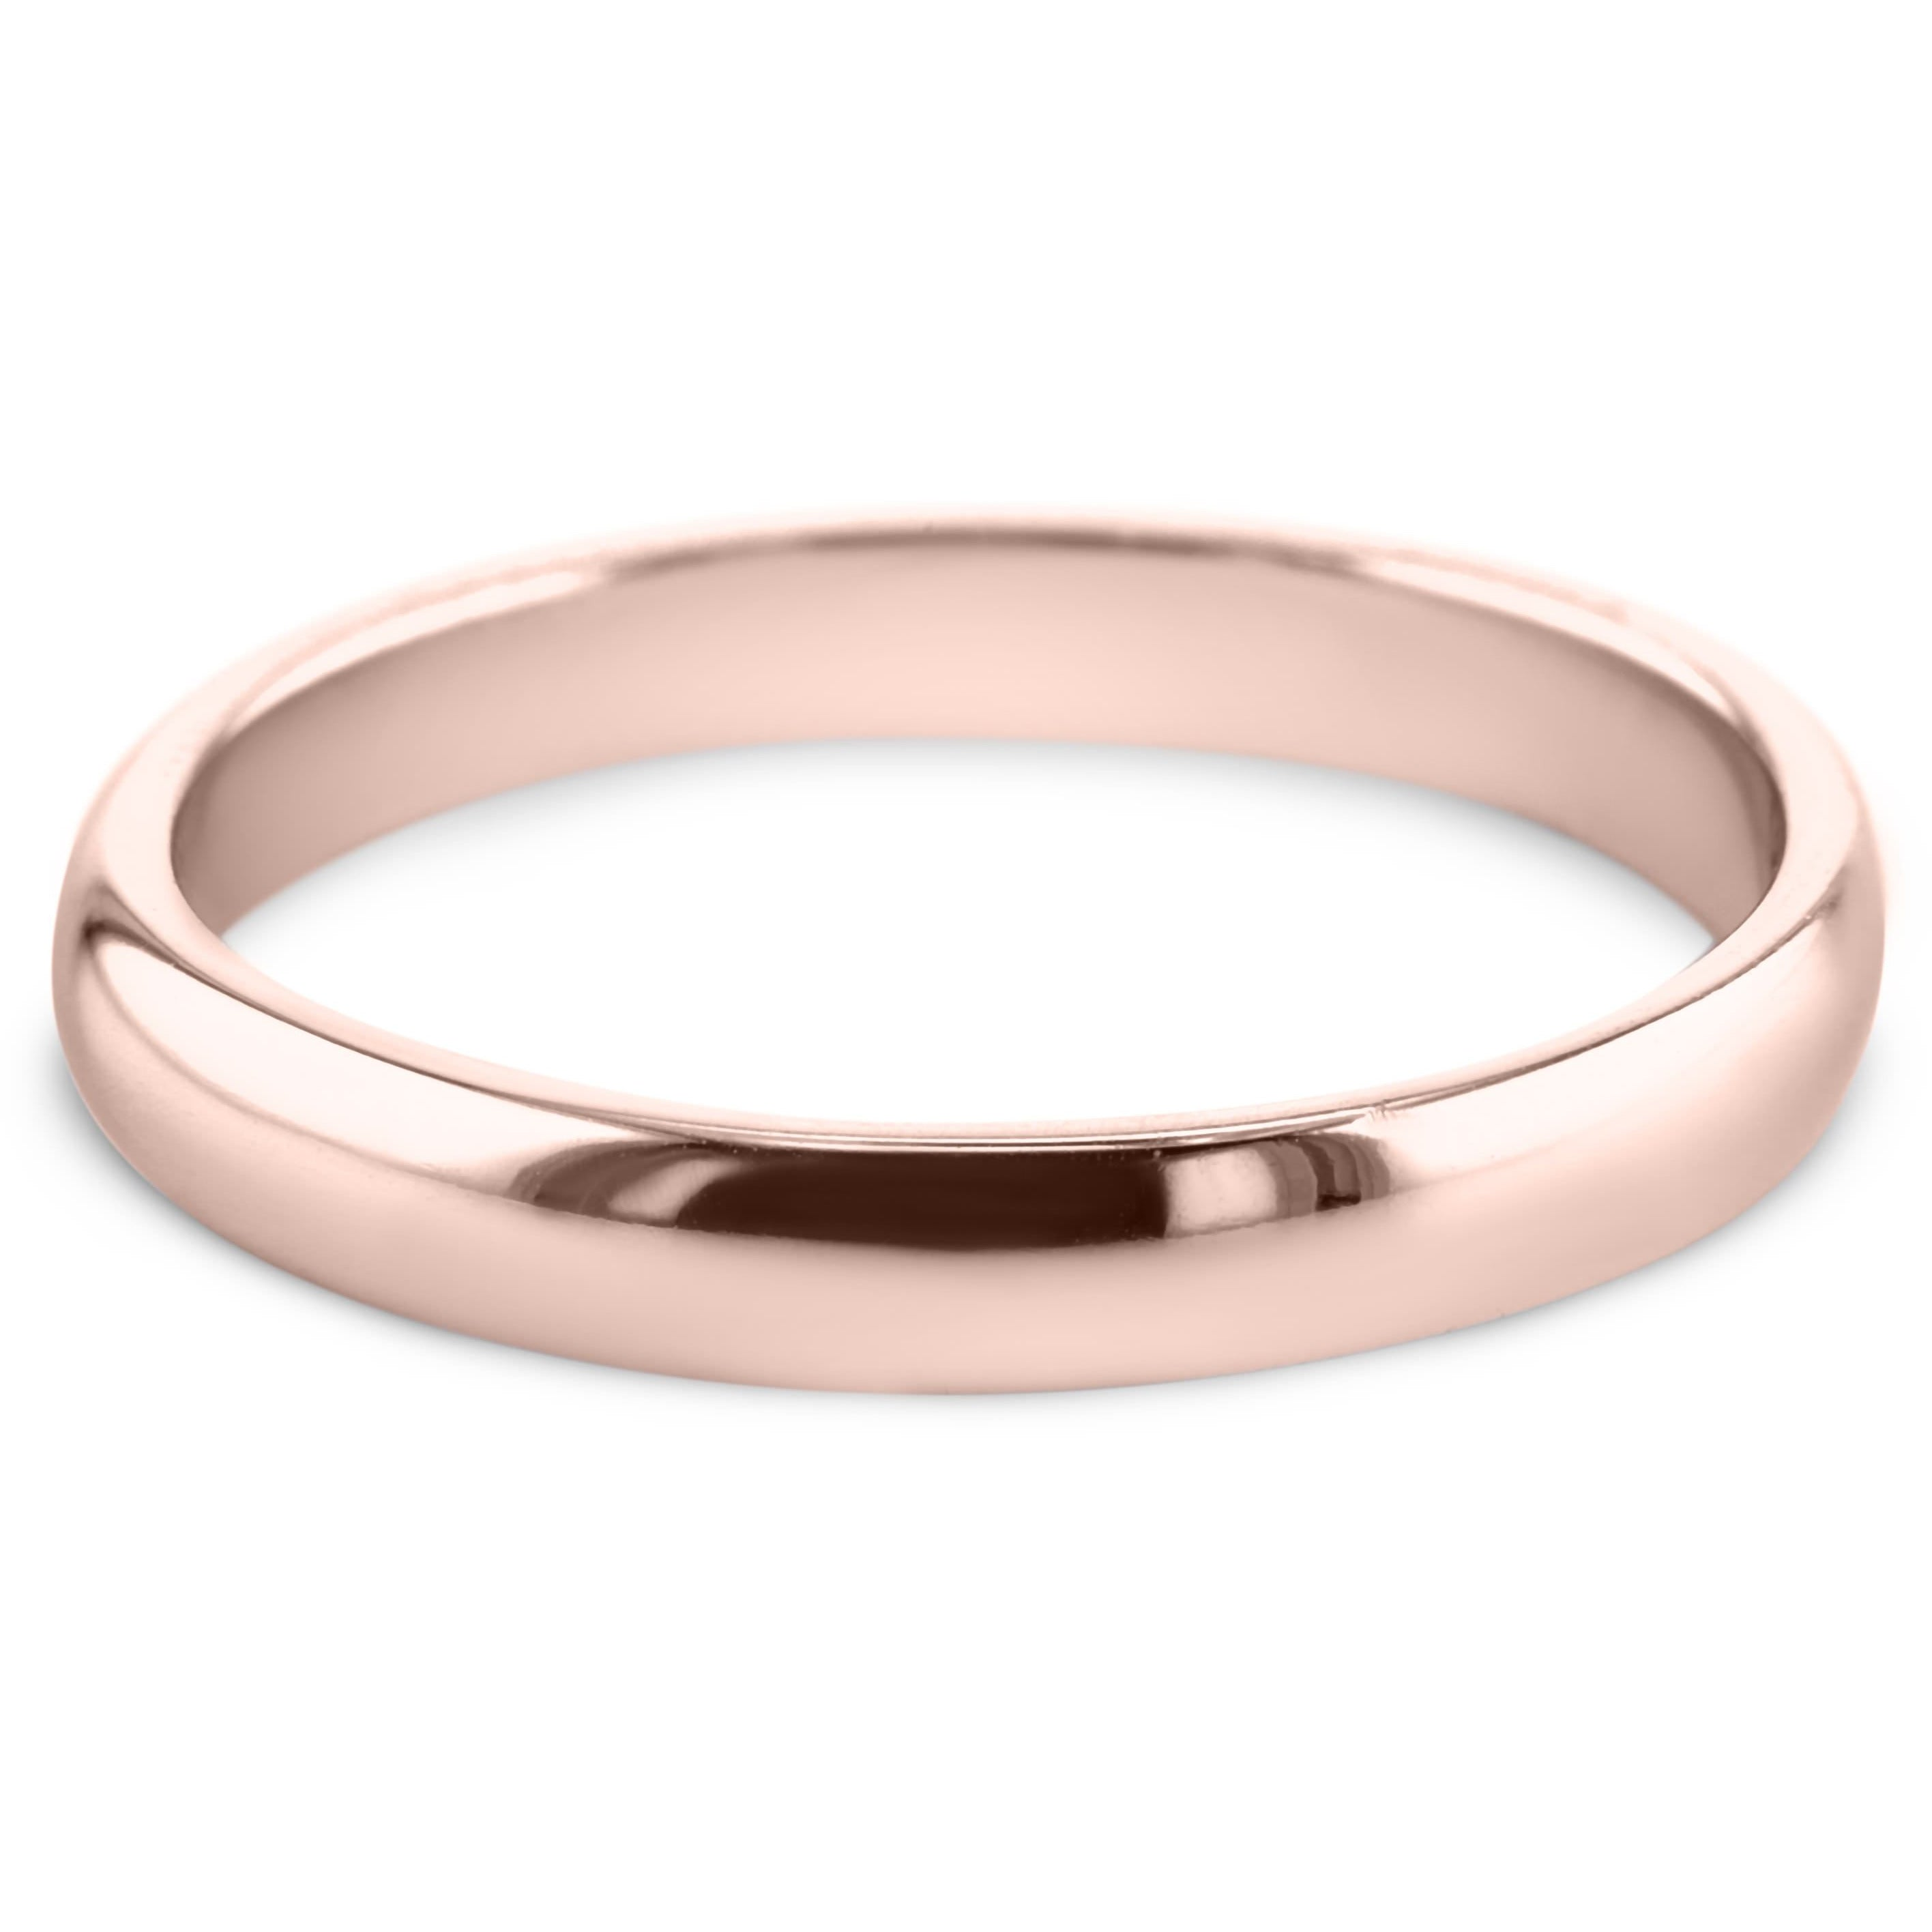 14K Rose Gold Solitaire Wedding Band Model #531W_RDR